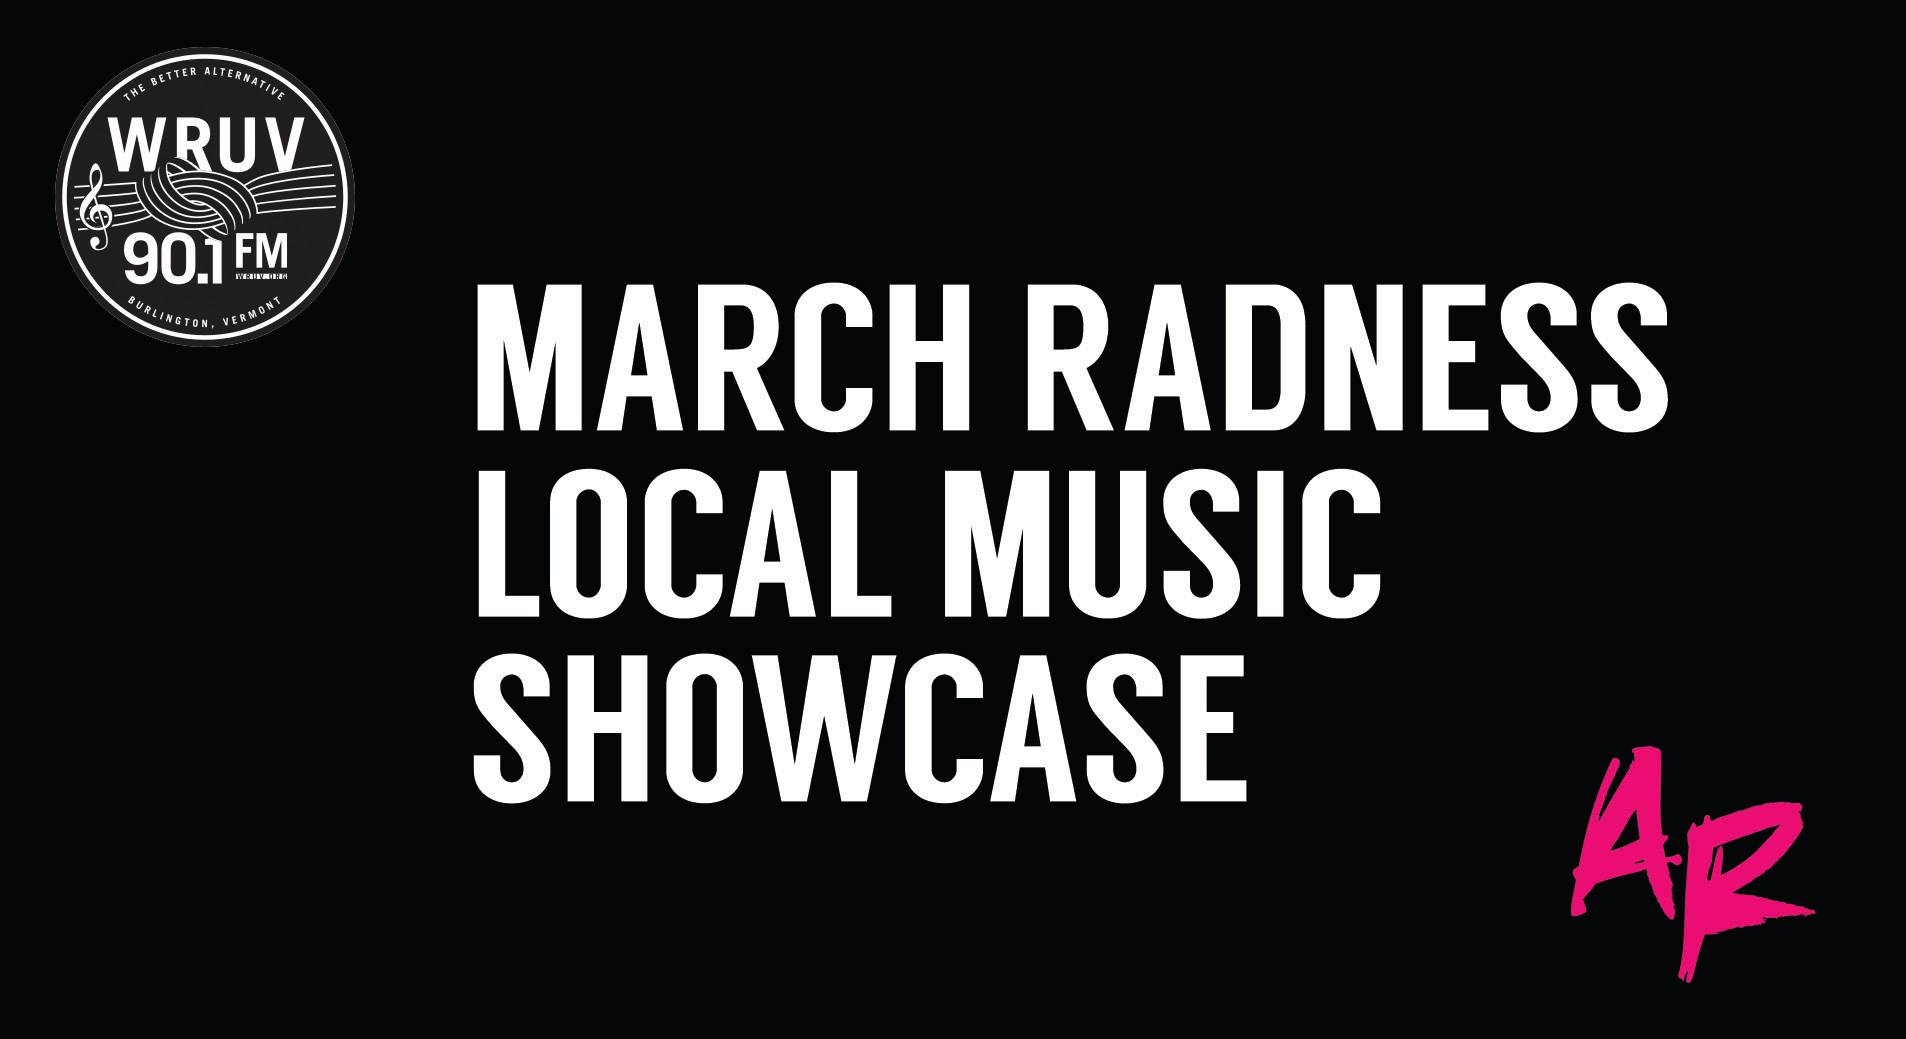 March Radness: Local Music Showcase